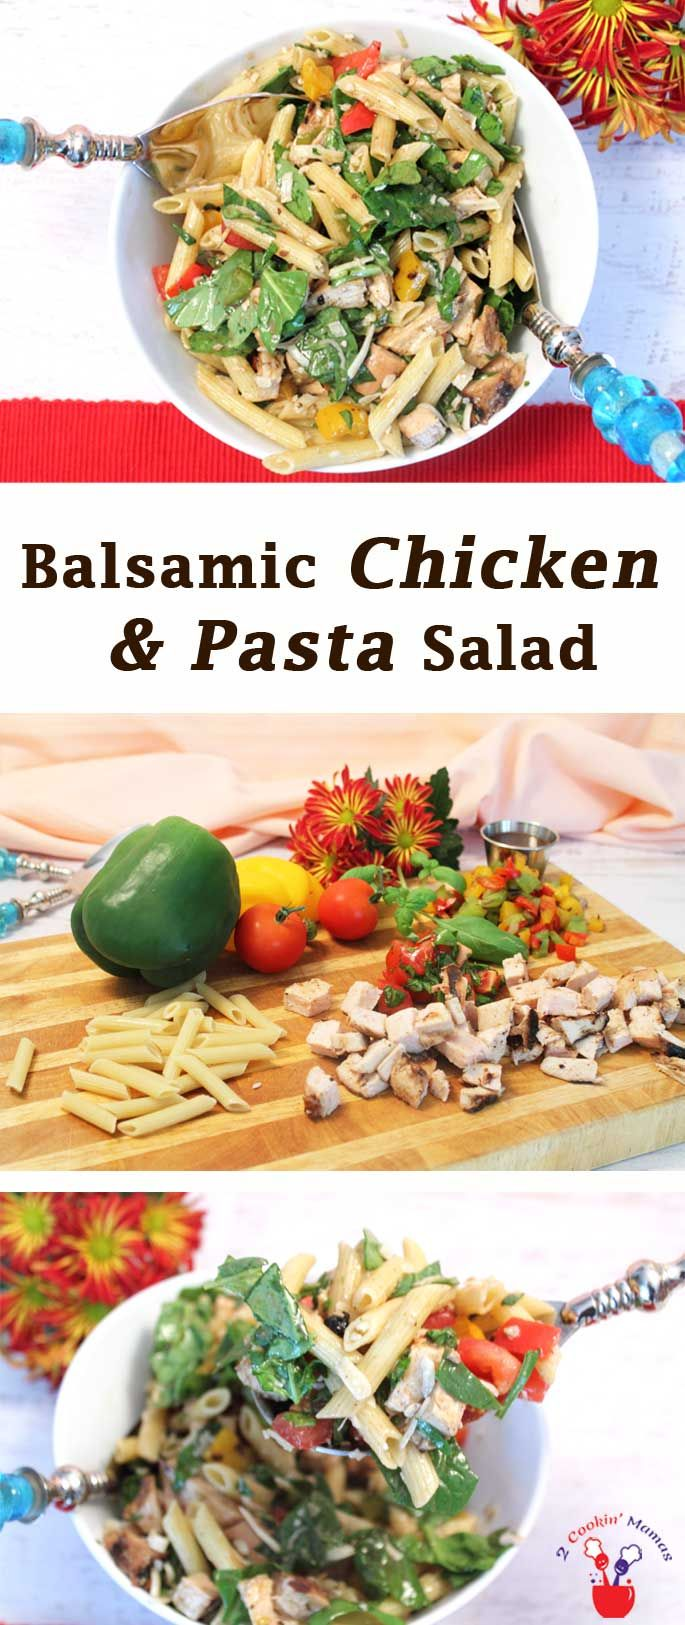 Balsamic Chicken & Pasta Salad is both healthy & delicious. It's the perfect summertime dinner. The flavors of grilled chicken & vegetables mixed with fresh basil & tomatoes will have everyone saying WOW!  via @2CookinMamas